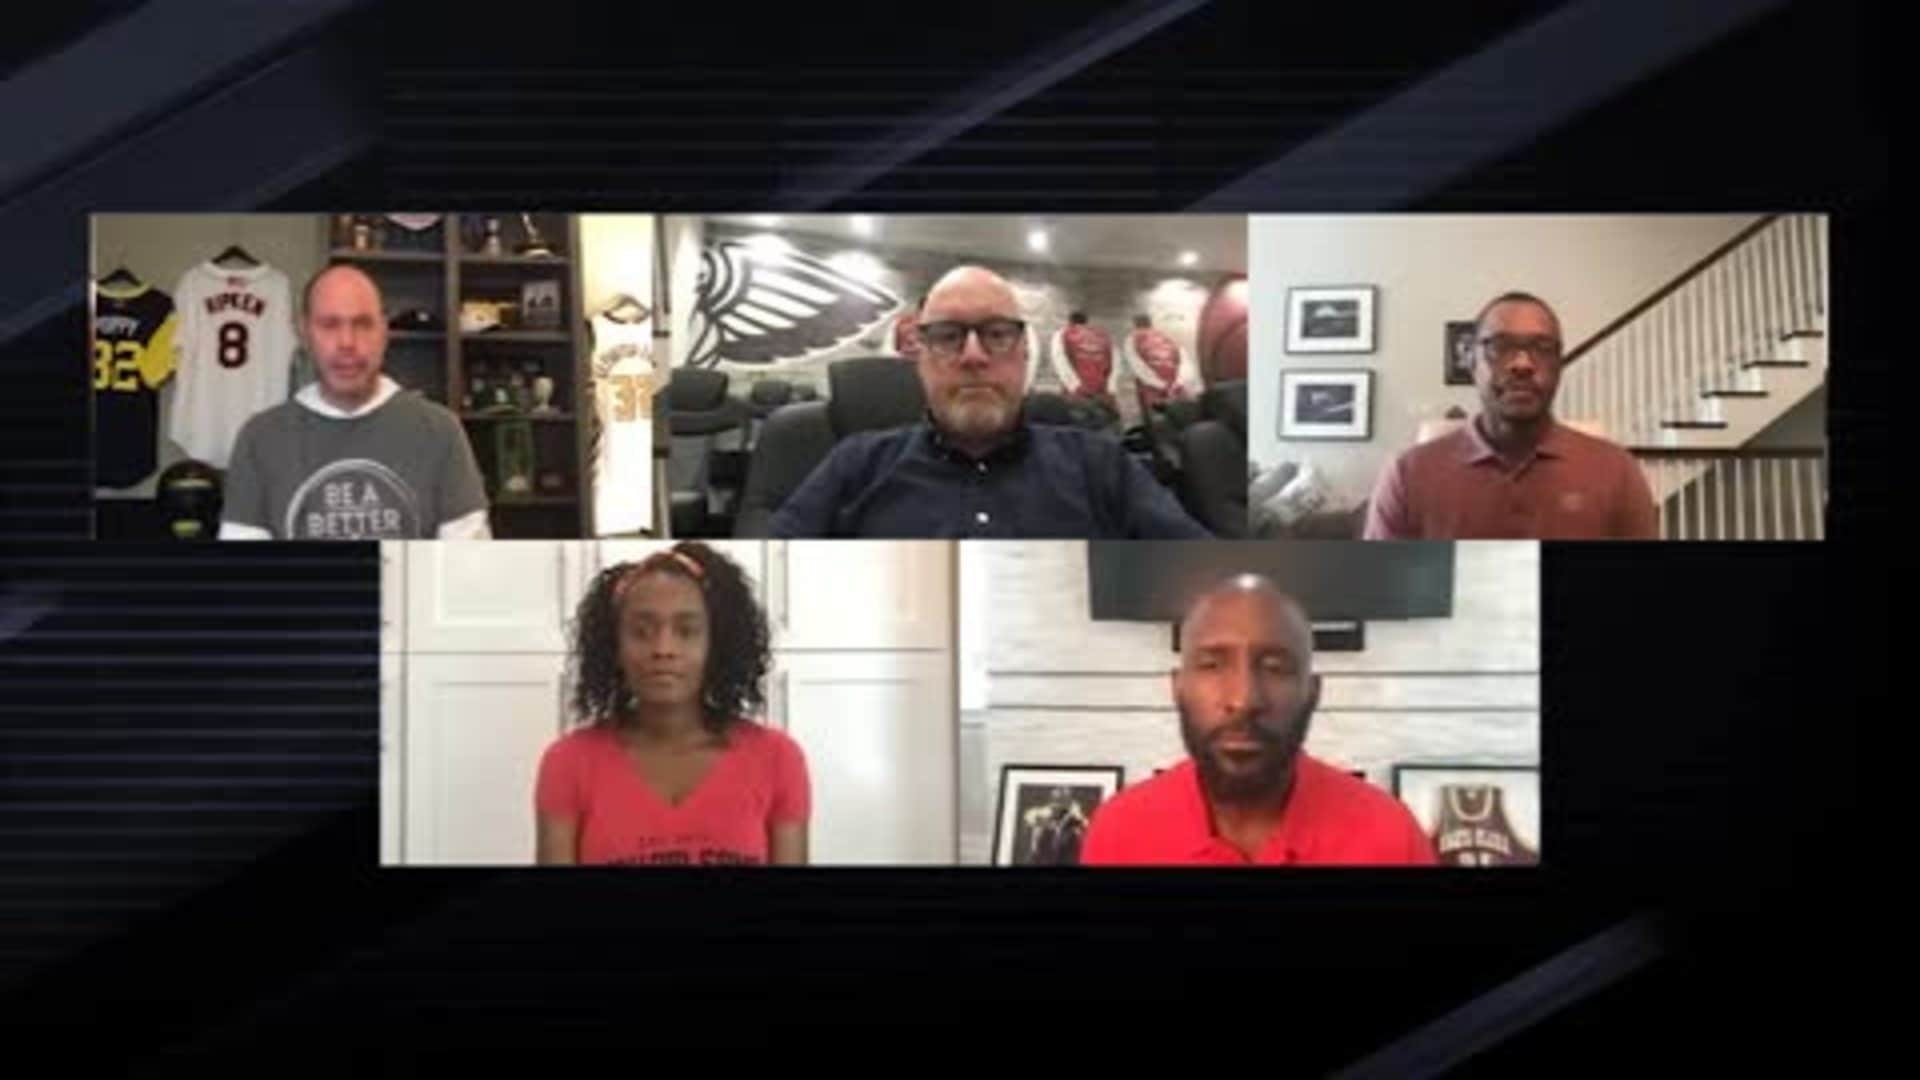 NBA Together: Ernie Johnson hosts roundtable with Swin Cash, David Griffin, and Alvin Gentry